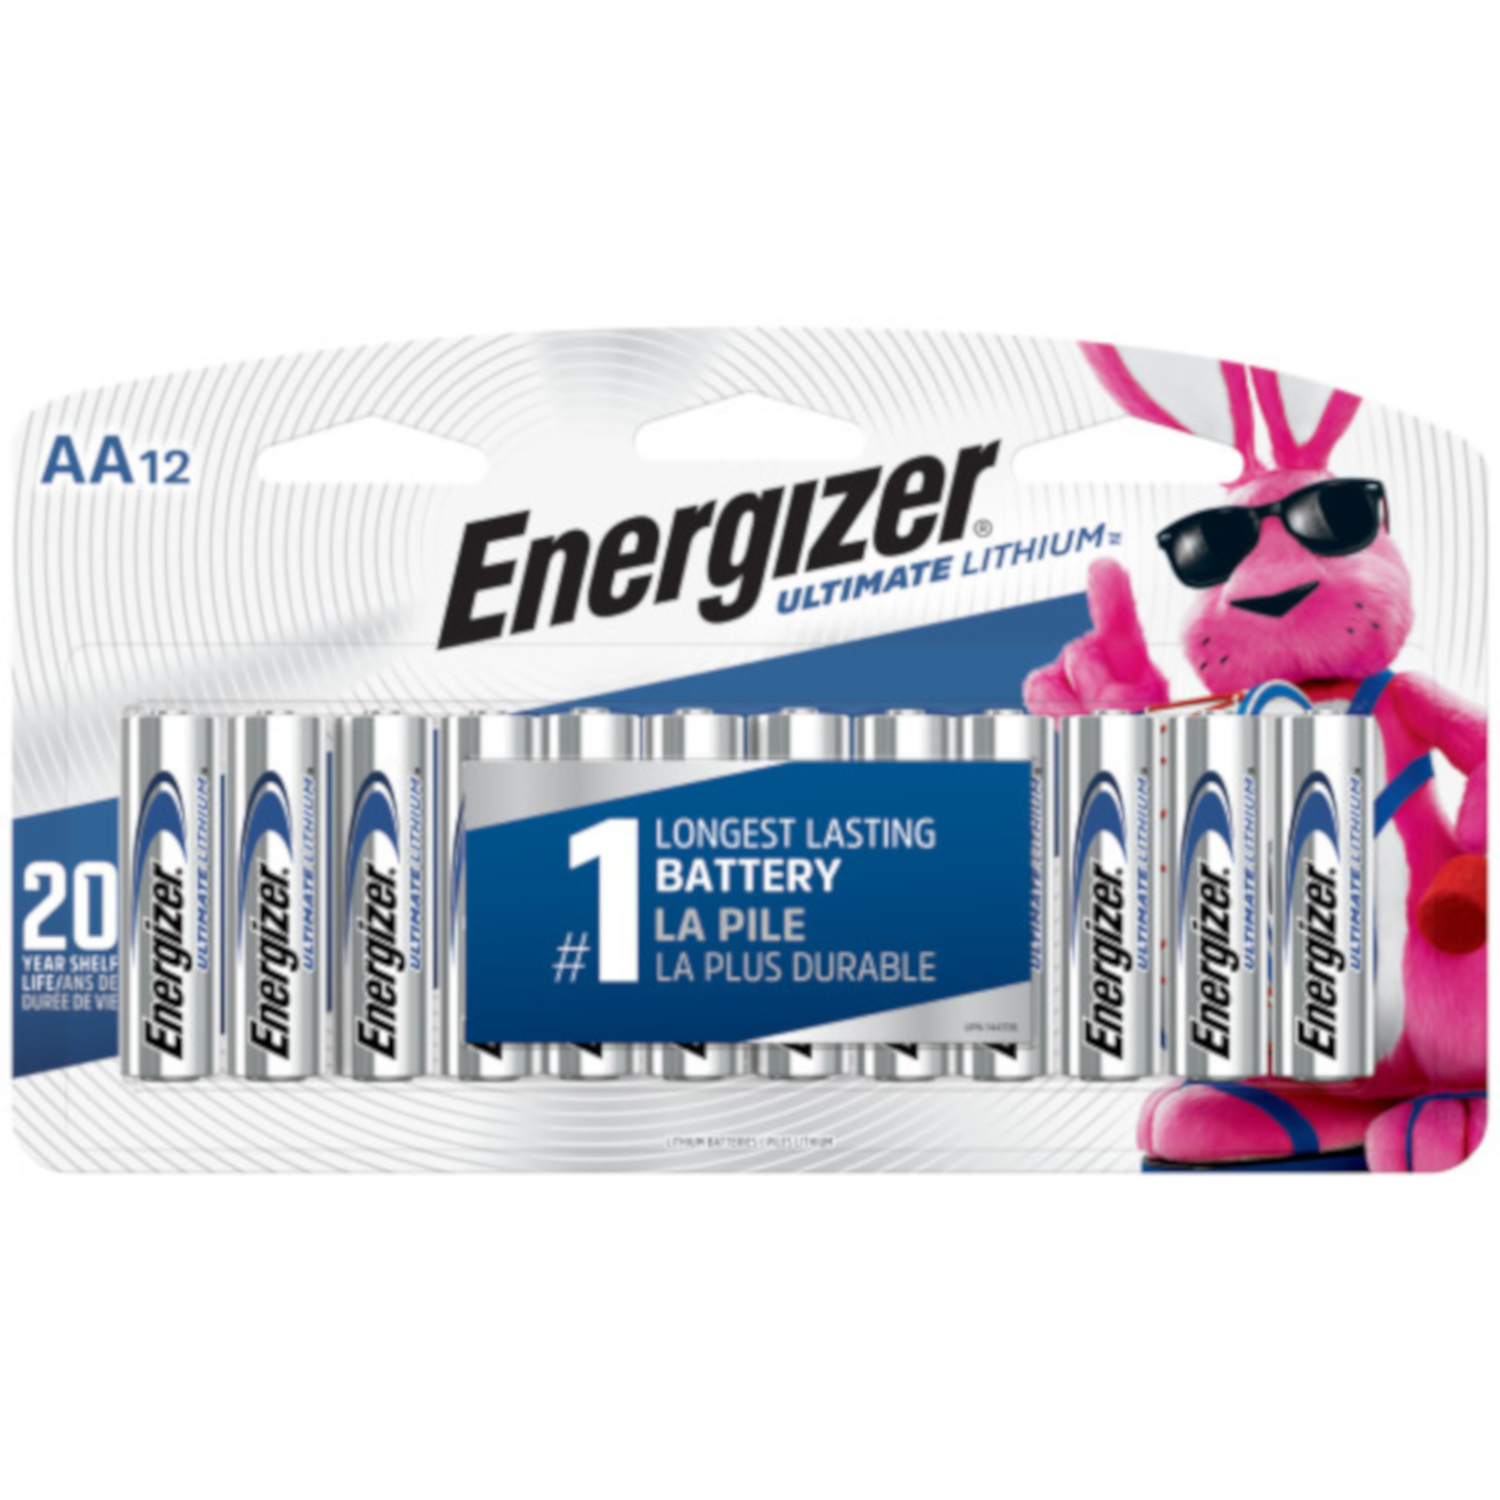 Energizer Ultimate Lithium Ion AA 1.5 volt Batteries 12 pk Nothing outlasts Energizer Ultimate Lithium AA batteries. The Energizer Ultimate Lithium batteries are the number 1 longest-lasting AA batteries. To ensure your favorite devices operate at their peak performance, depend on Energizer Ultimate Lithium batteries for work, play and home.